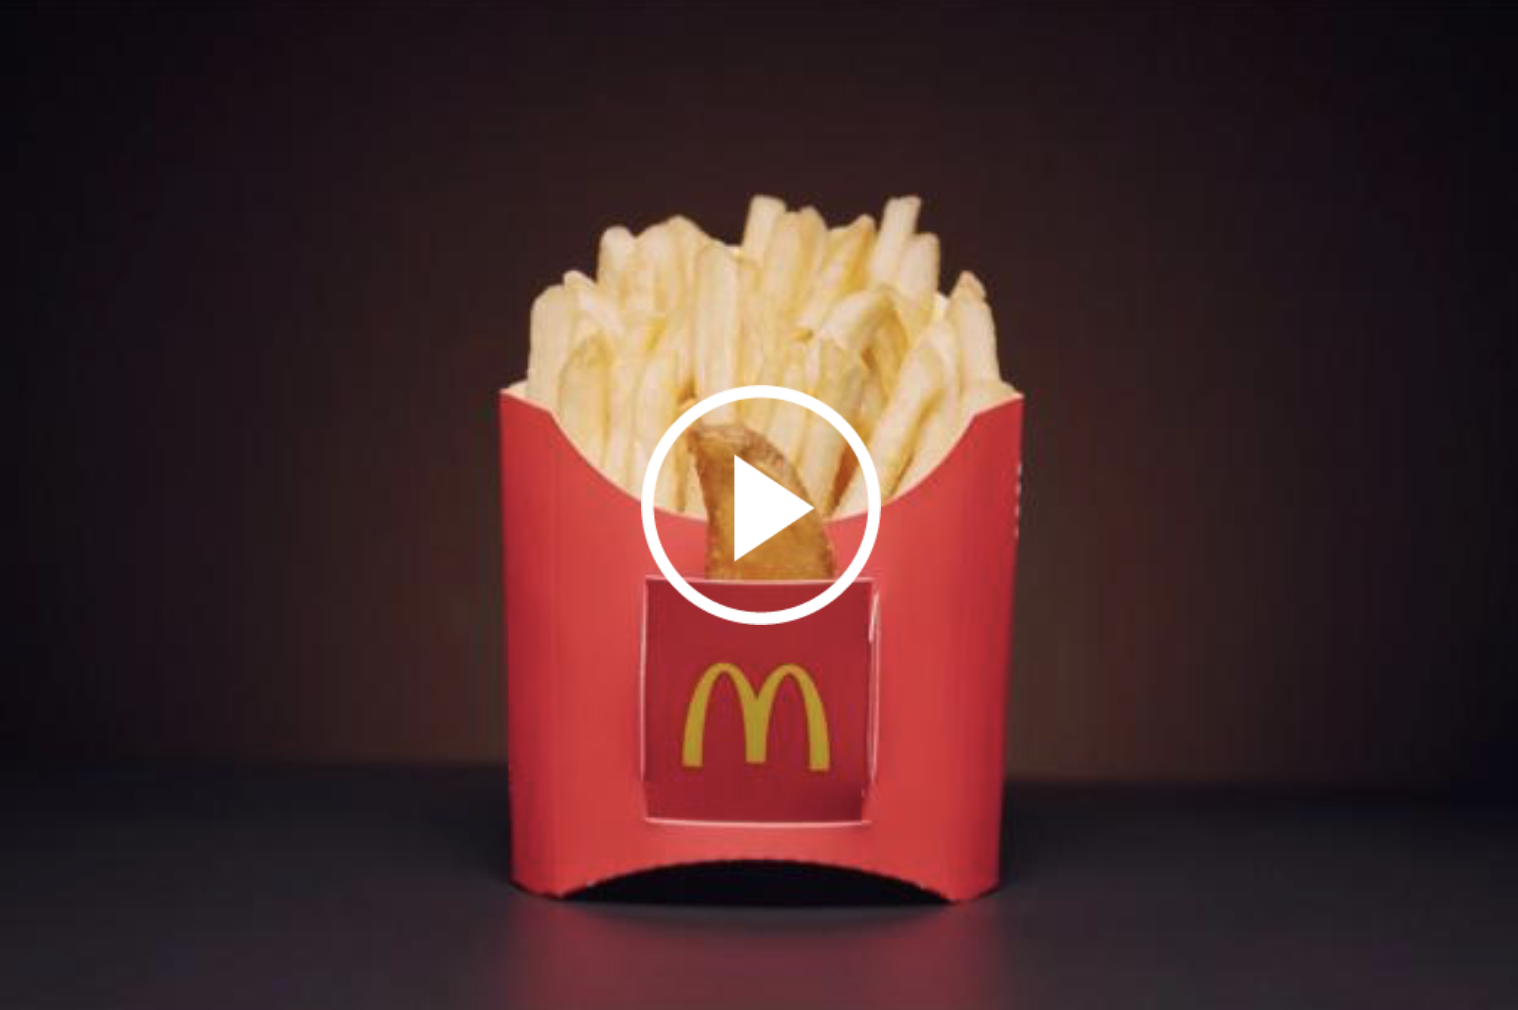 Brand alters its packaging to make a pocket for a 'lucky' wedge fry